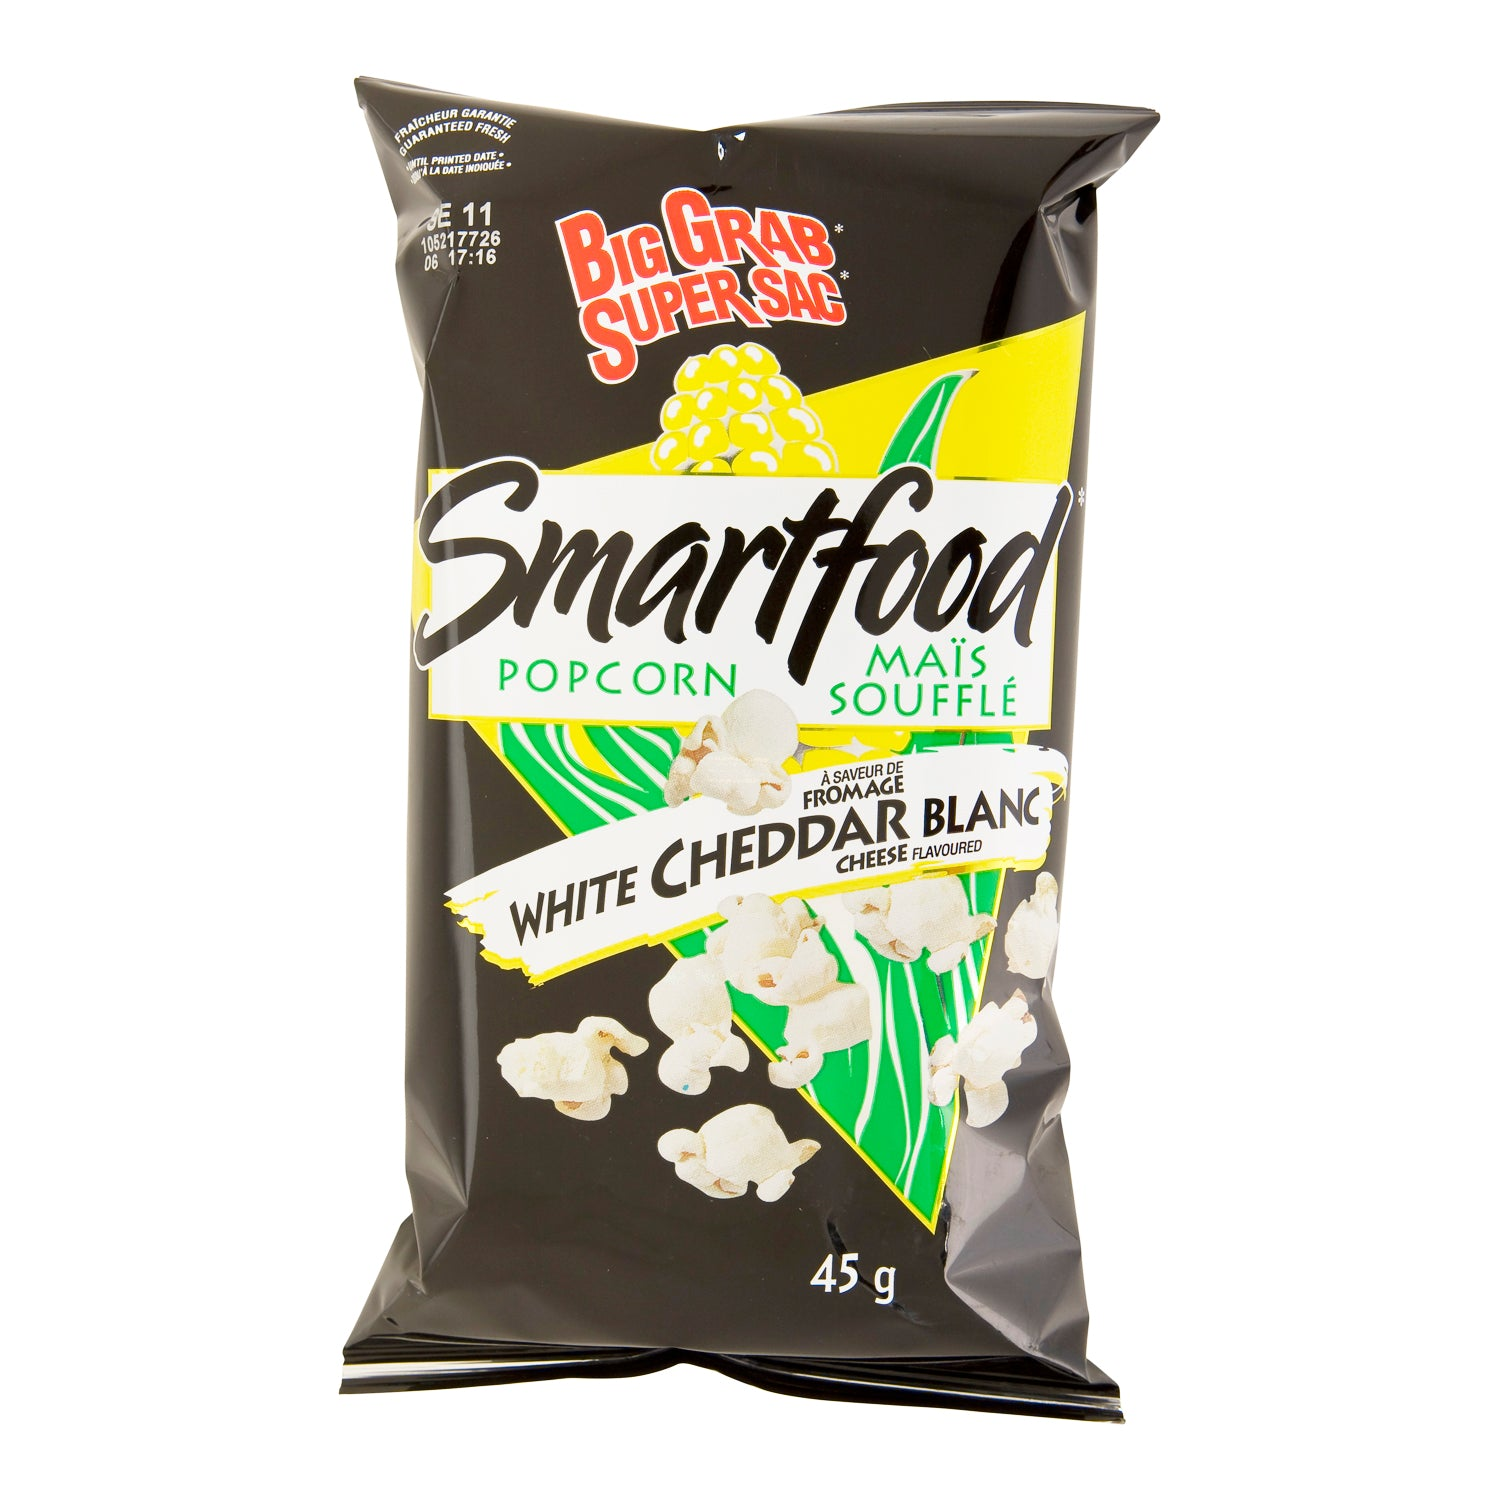 Frito Lay Smartfood White Cheddar Cheese Popcorn 45 g - 36 Pack [$0.92/bag]